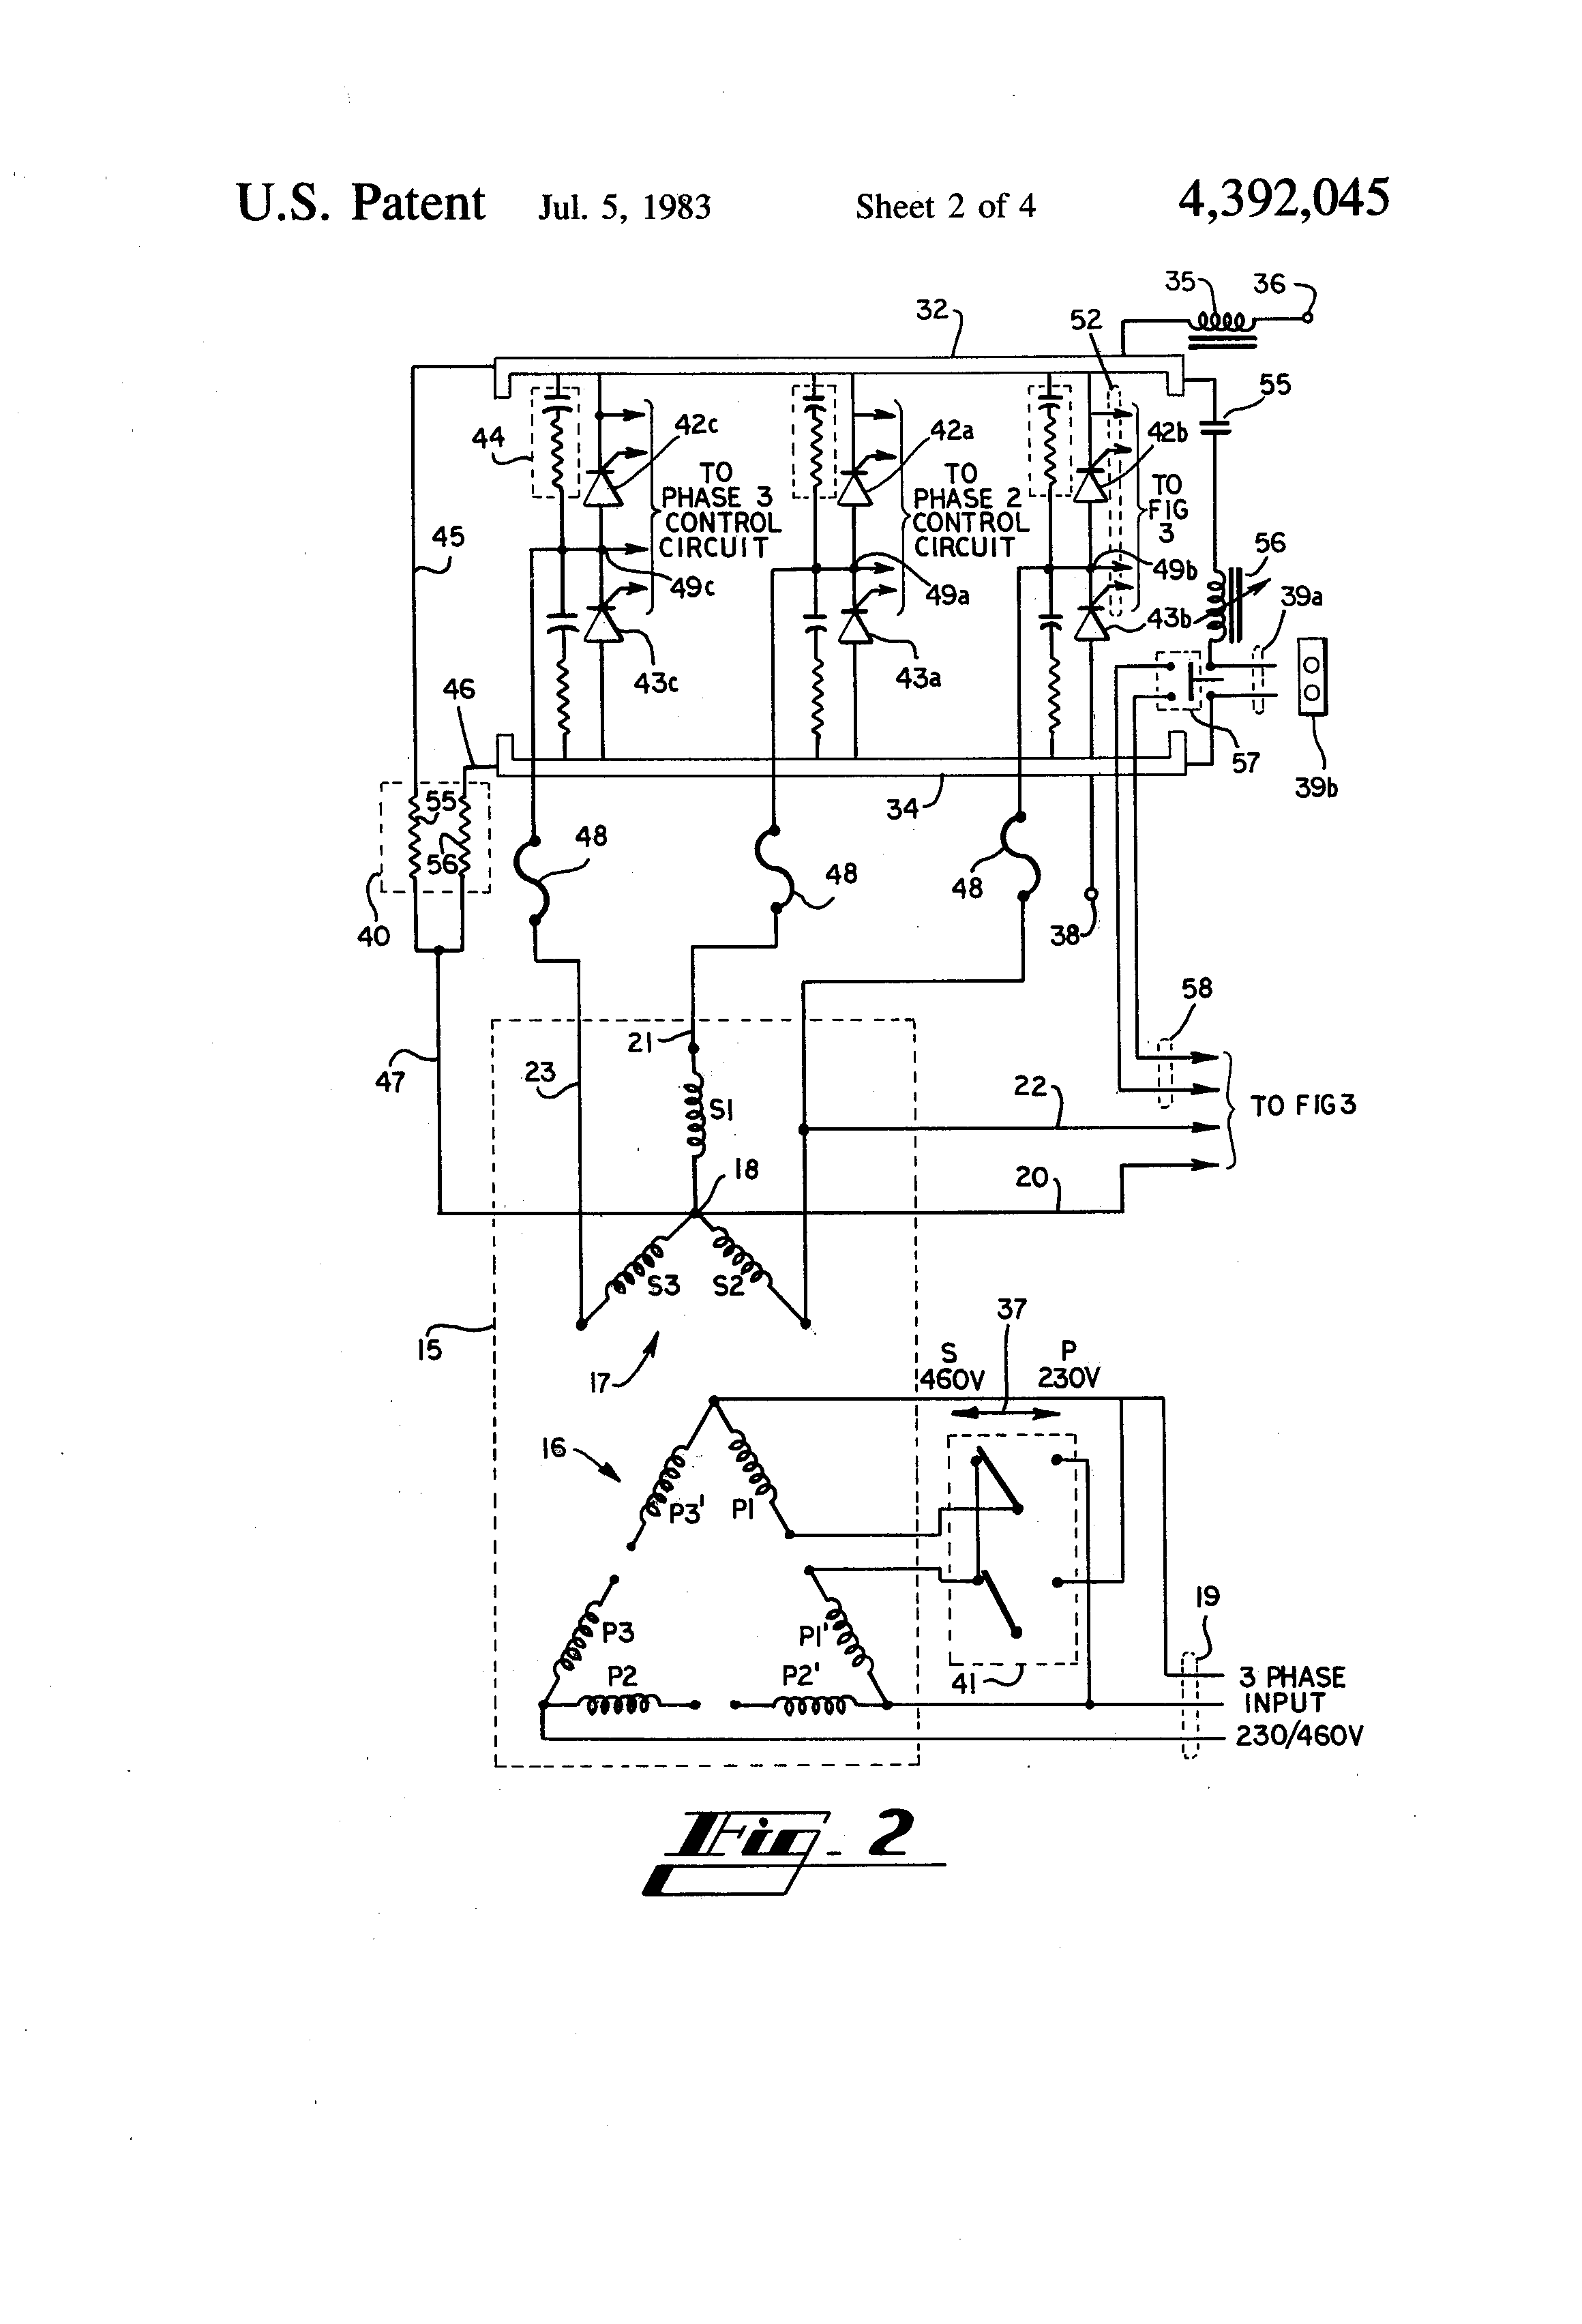 Patent US4392045 - Thyristor controlled welding power supply ... on arc welder wiring diagram, mig welder switch, hobart welder wiring diagram, mig welder cover, mig welder wire, mig welder valves, dc welder wiring diagram, mig welder capacitor, mig welder motor, mig welder fuse diagram, mig welder regulator, 220 welder wiring diagram, miller welder wiring diagram, mig welder cable, mig 100 welder schematic diagram, mig welder parts, capacitive discharge welder wiring diagram, tig welder wiring diagram, mig welder assembly, chicago electric welder wiring diagram,